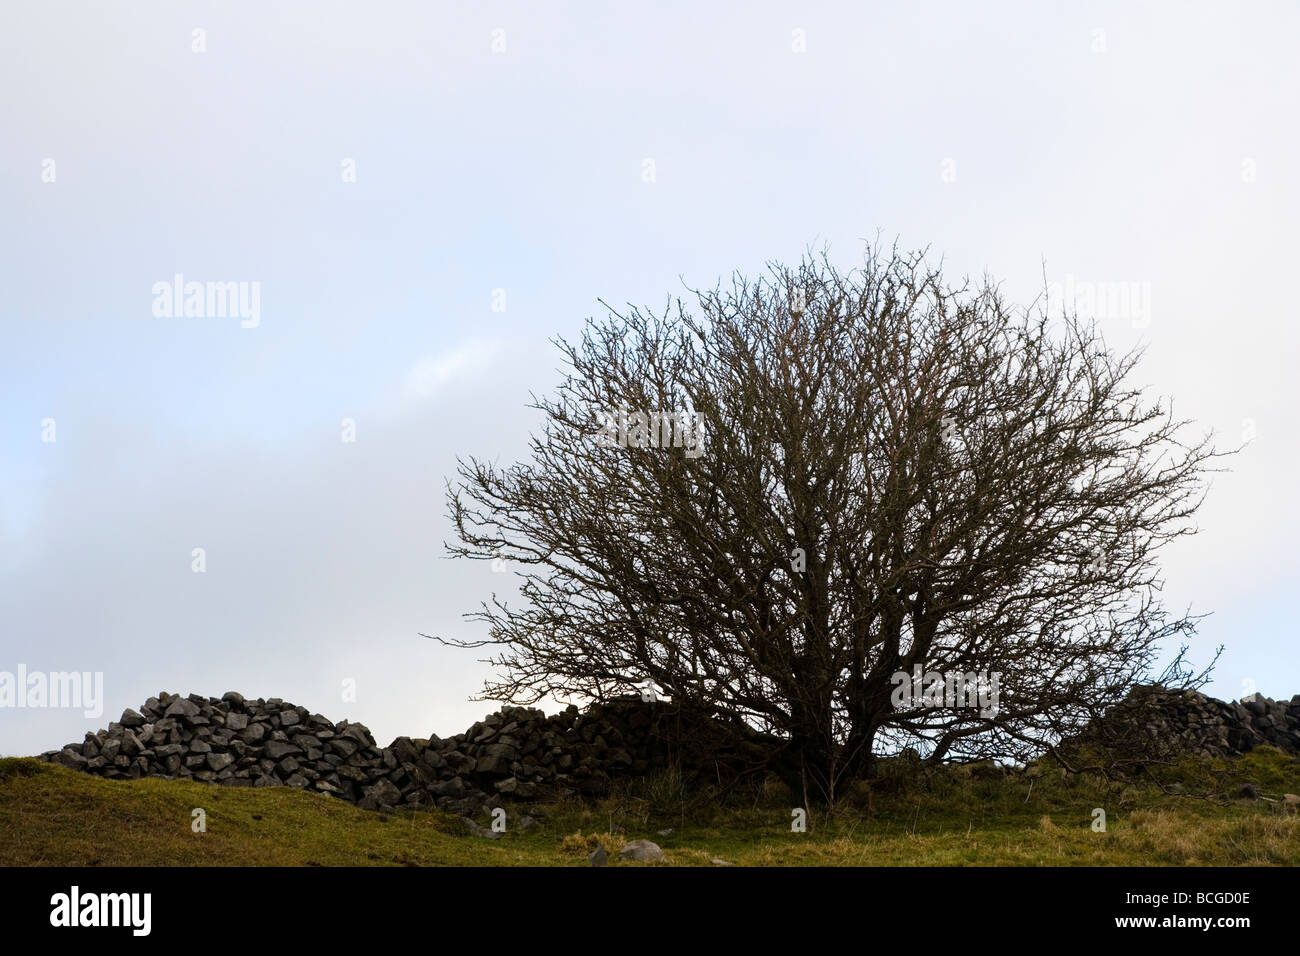 Single Hawthorn tree against a drystone wall above Millers Dale in the Peak District in Derbyshire - Stock Image